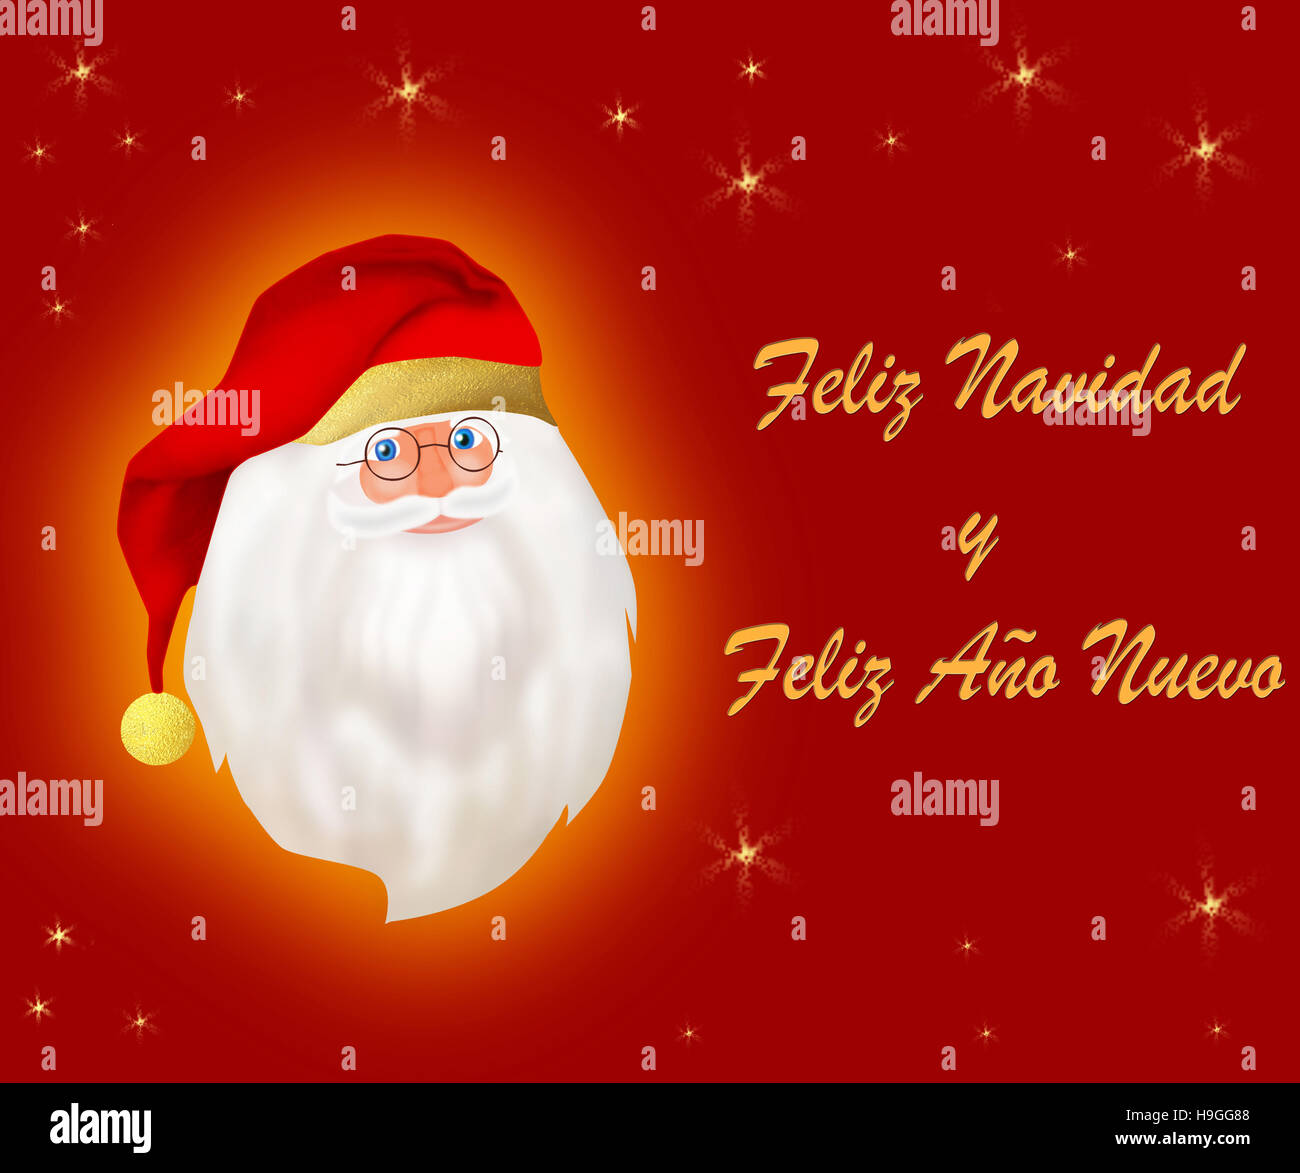 Merry Christmas and a Happy New Year spanish card - Stock Image